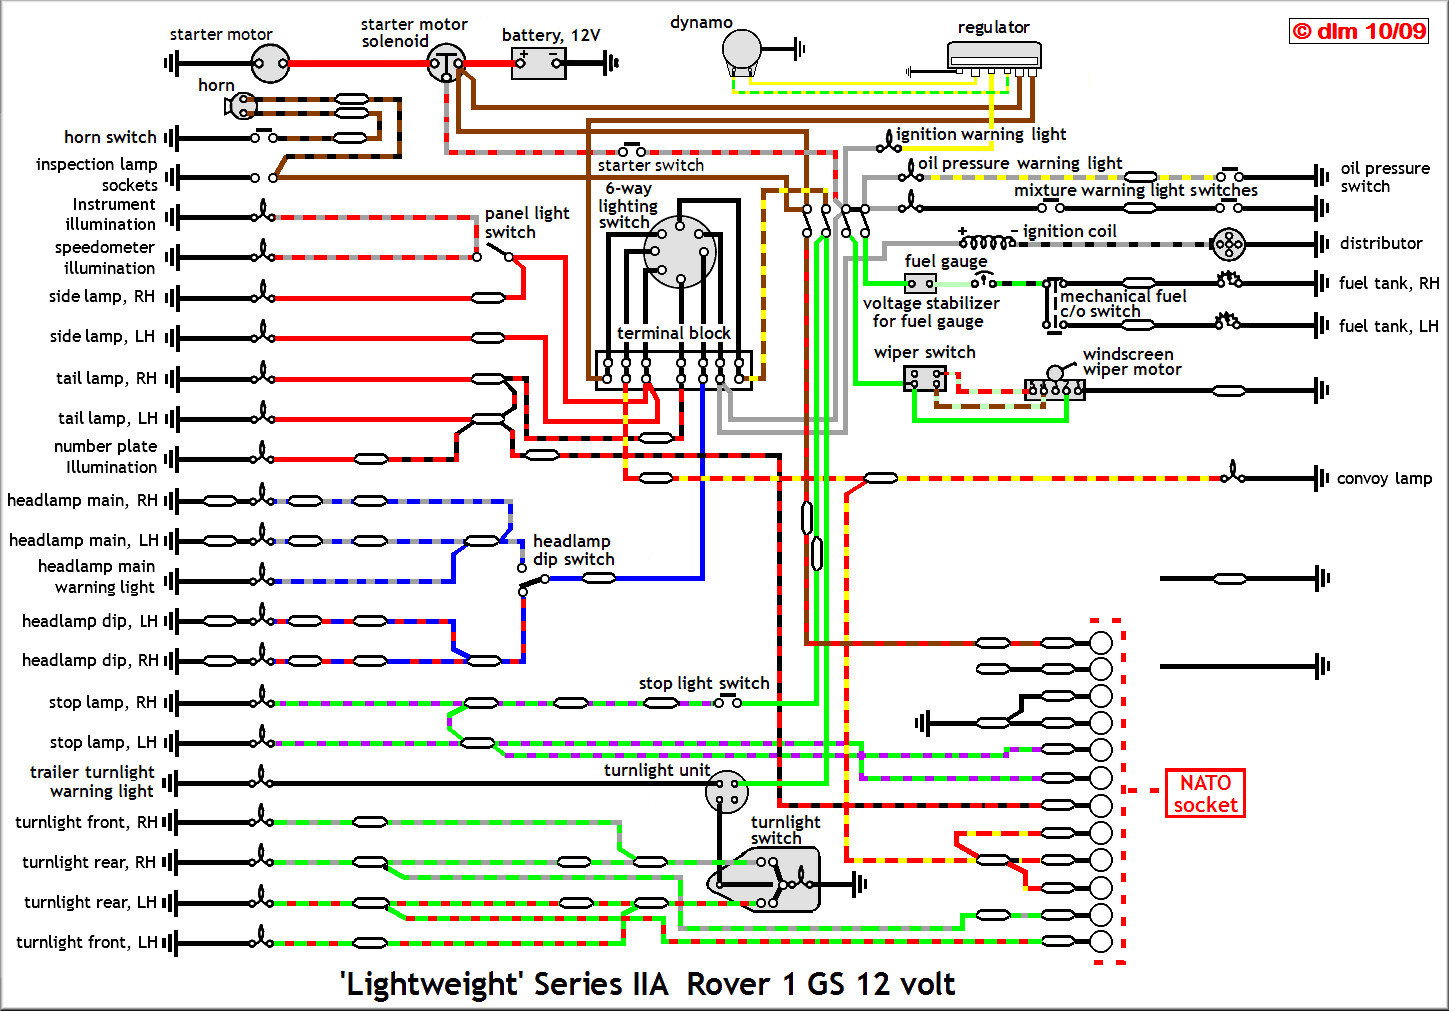 Rover 1 Diagram land rover lightweight land rover series 3 wiring diagram at gsmx.co